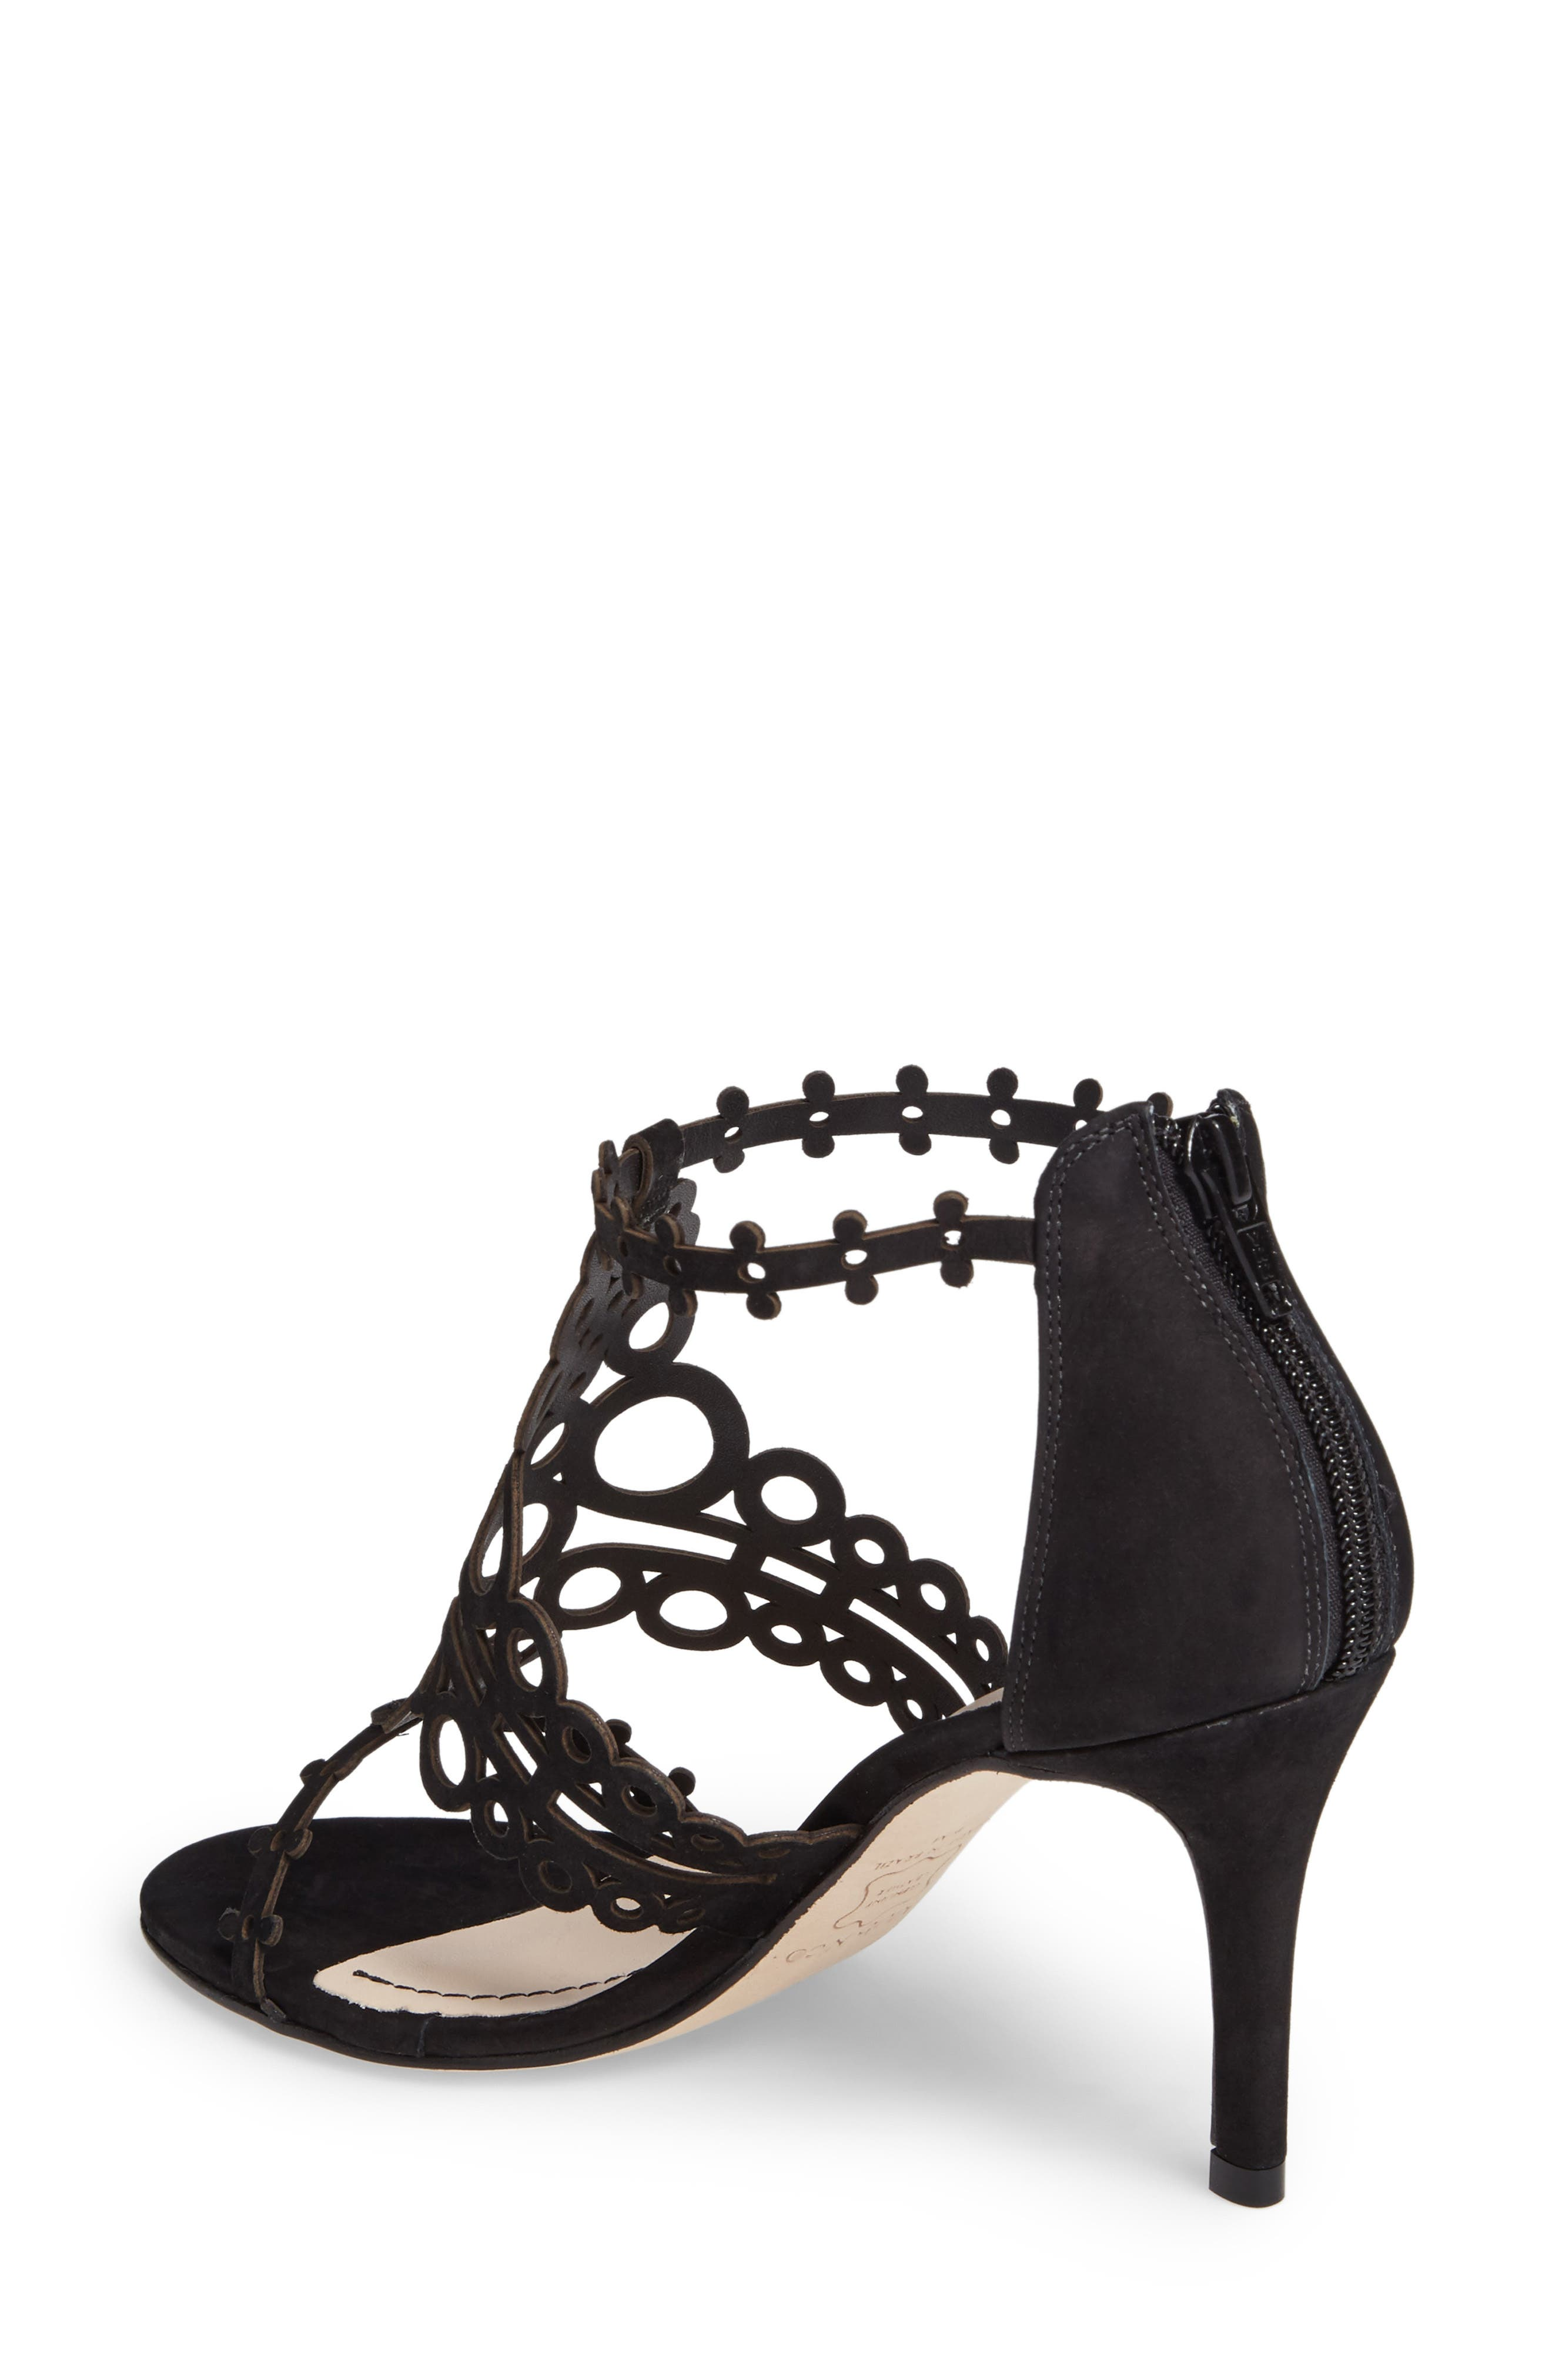 'Antonia' Laser Cut T-Strap Sandal,                             Alternate thumbnail 6, color,